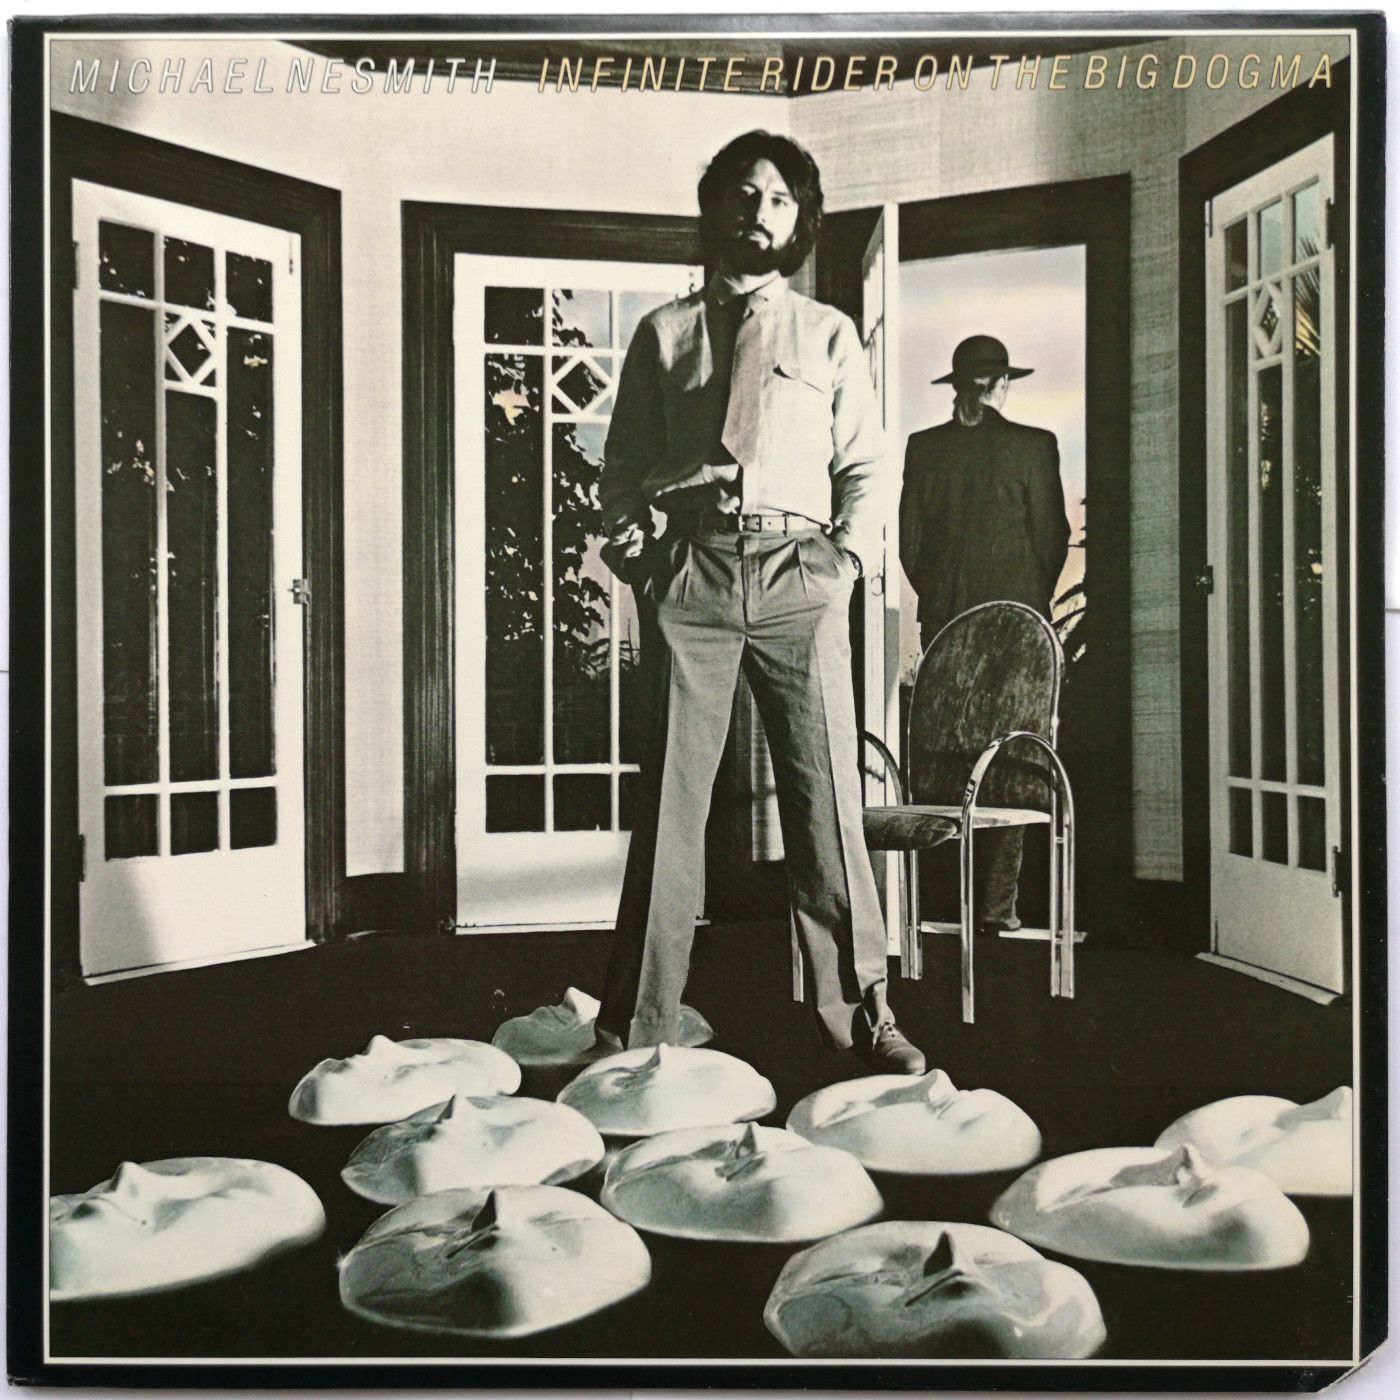 Michael Nesmith Infinite Rider On The Big Dogma LP undefined